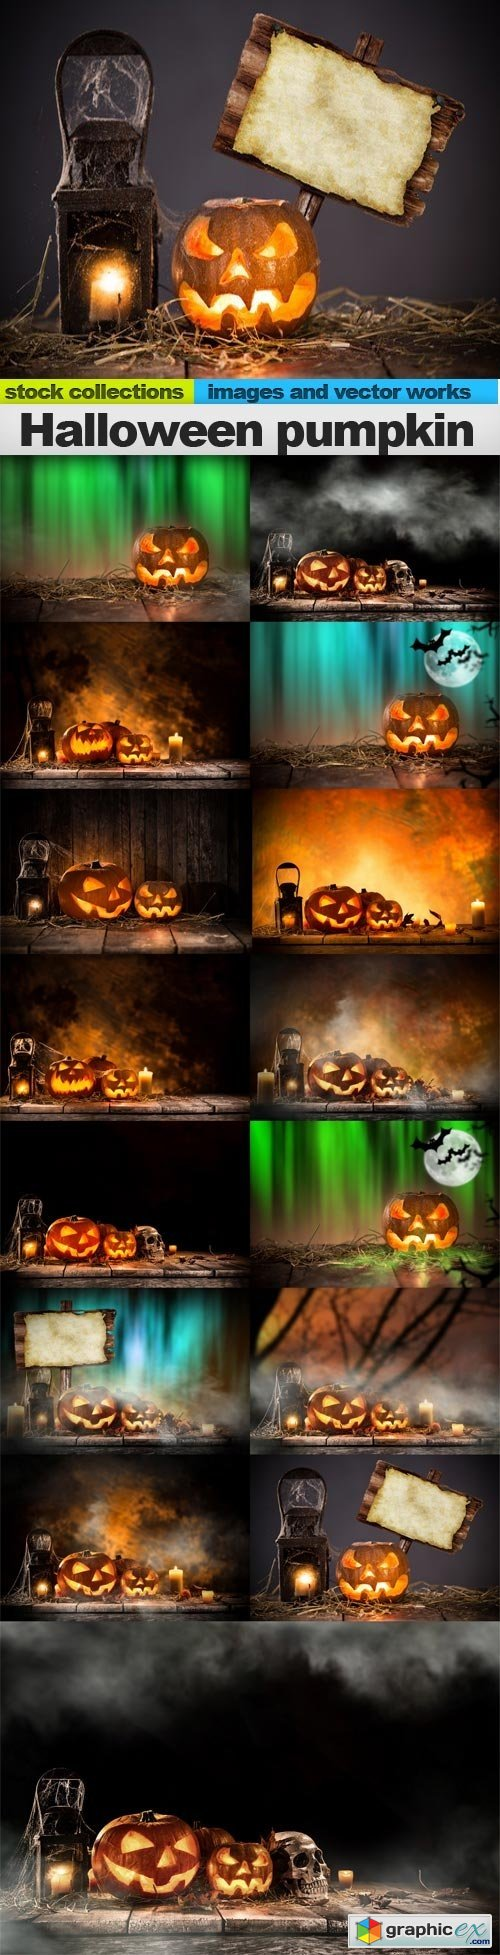 Halloween pumpkin, 15 x UHQ JPEG